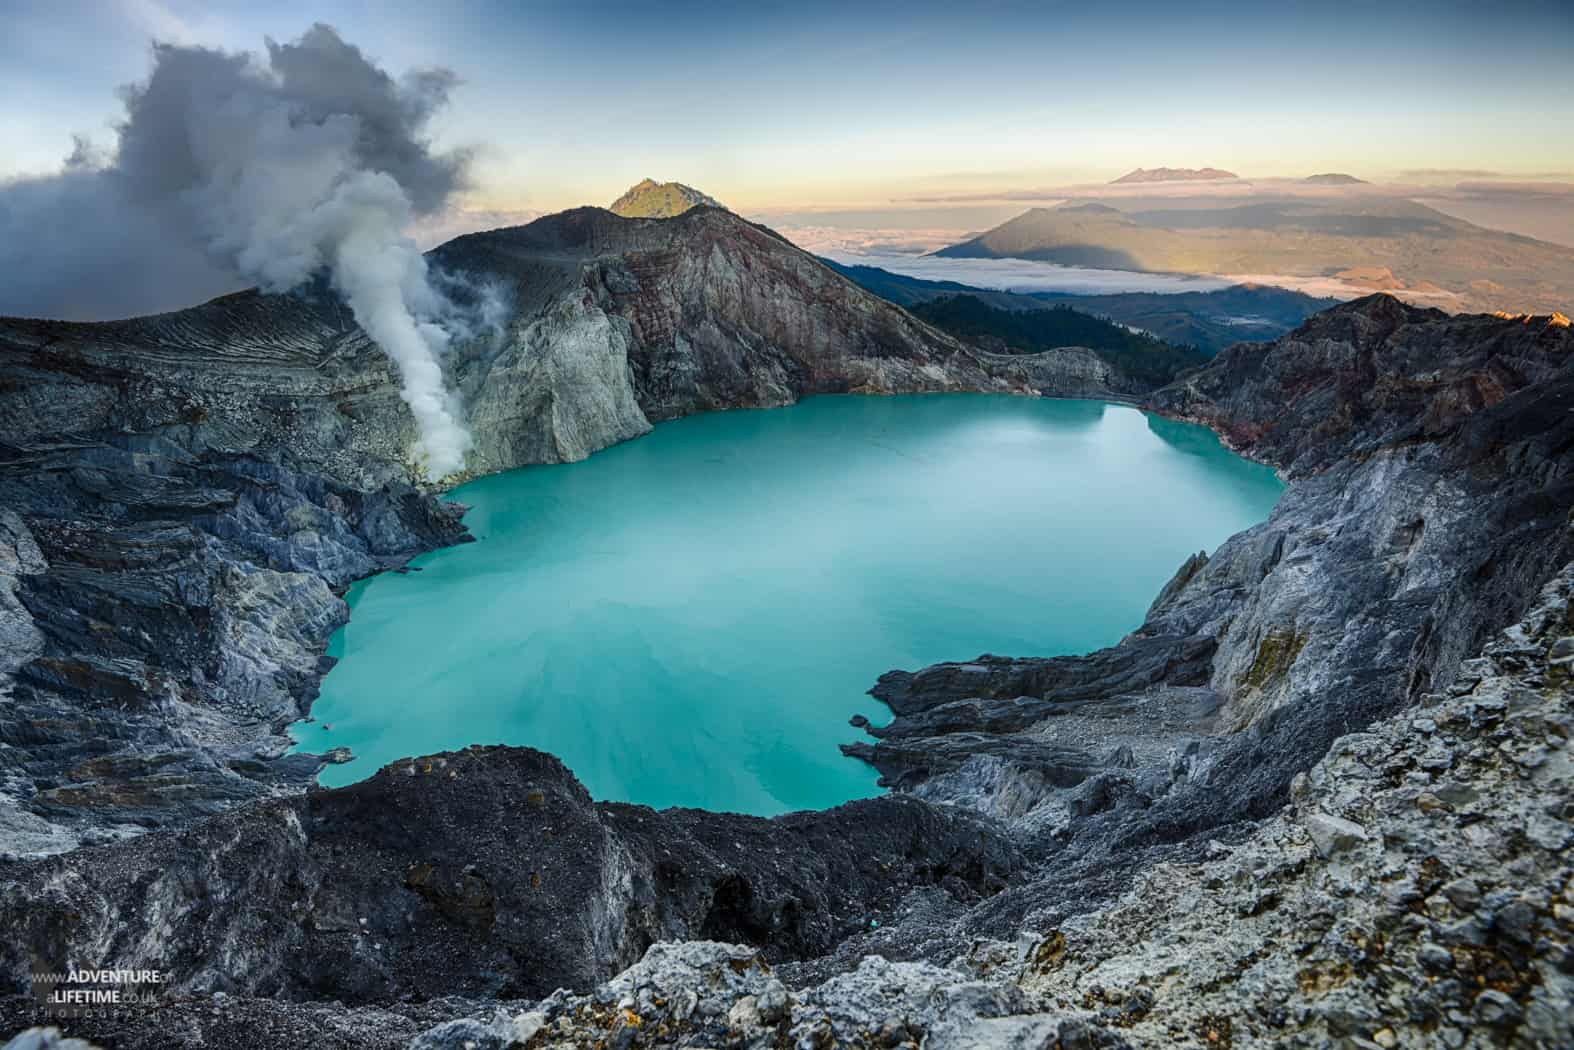 Incredible Ijen volcano and blue crater lake